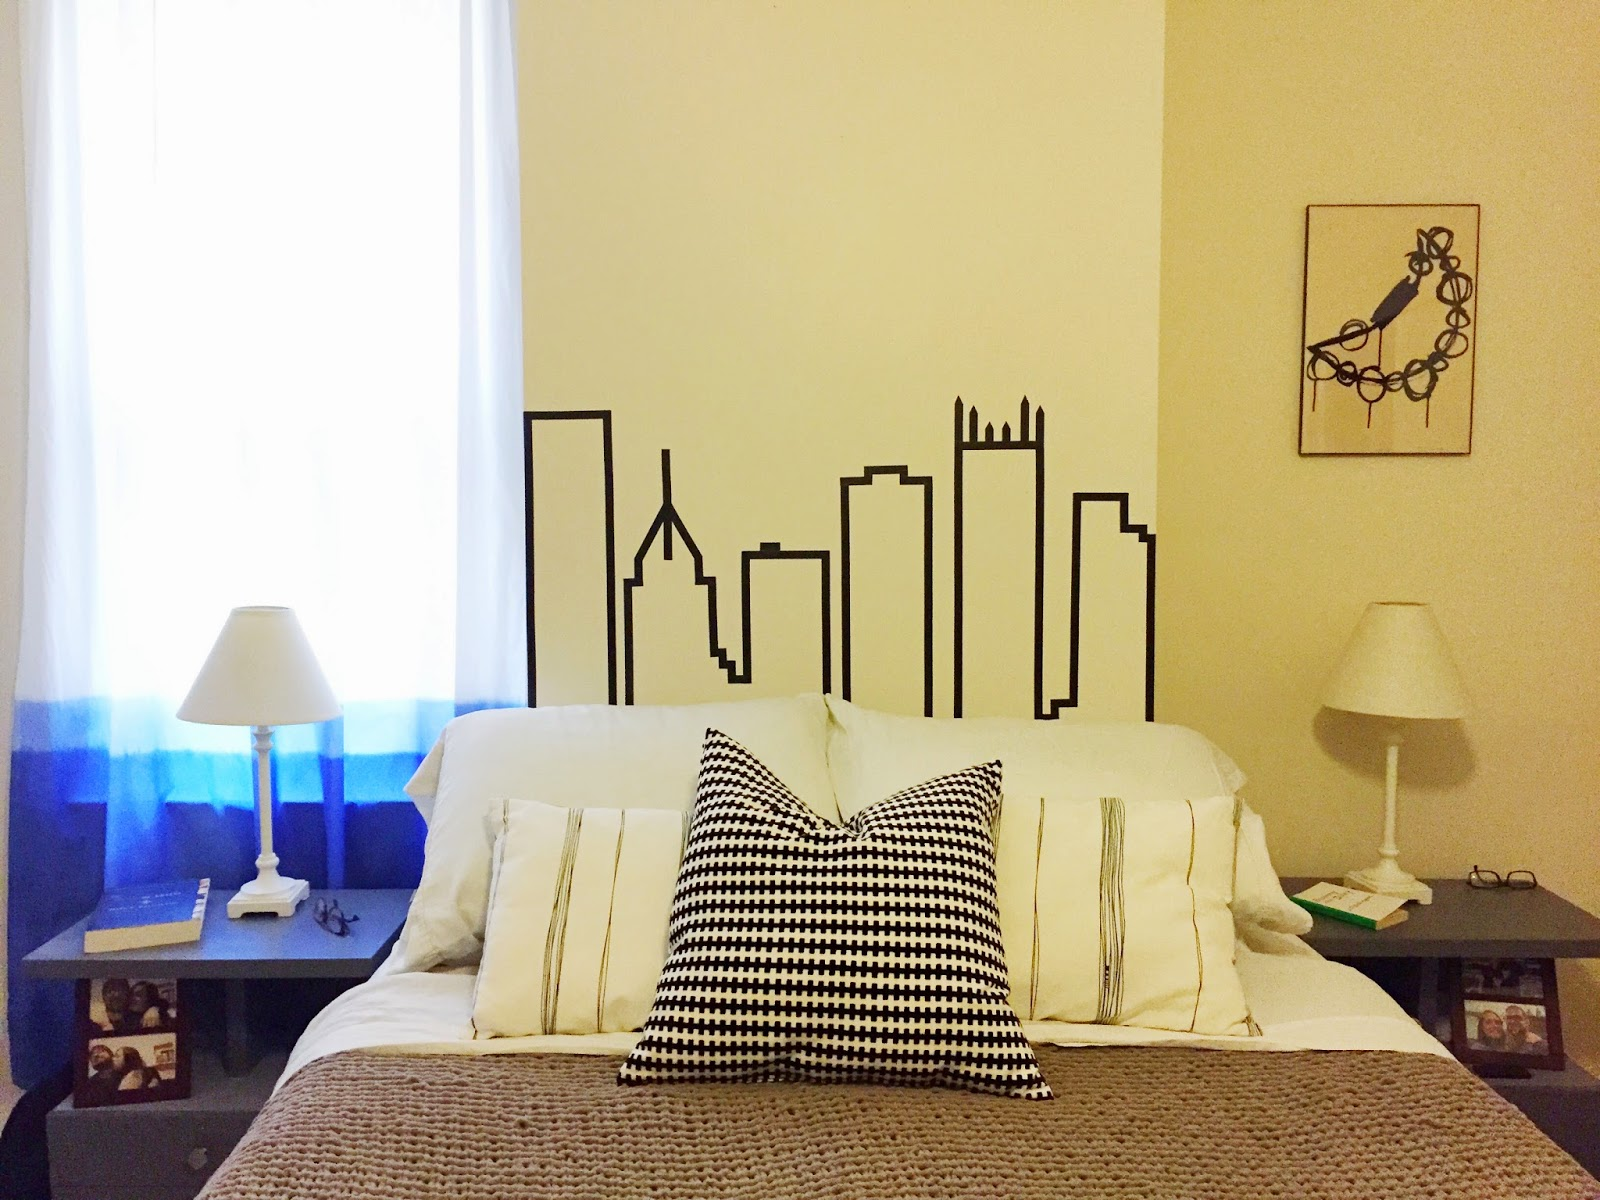 Washi Tape Headboard - The Surznick Common Room